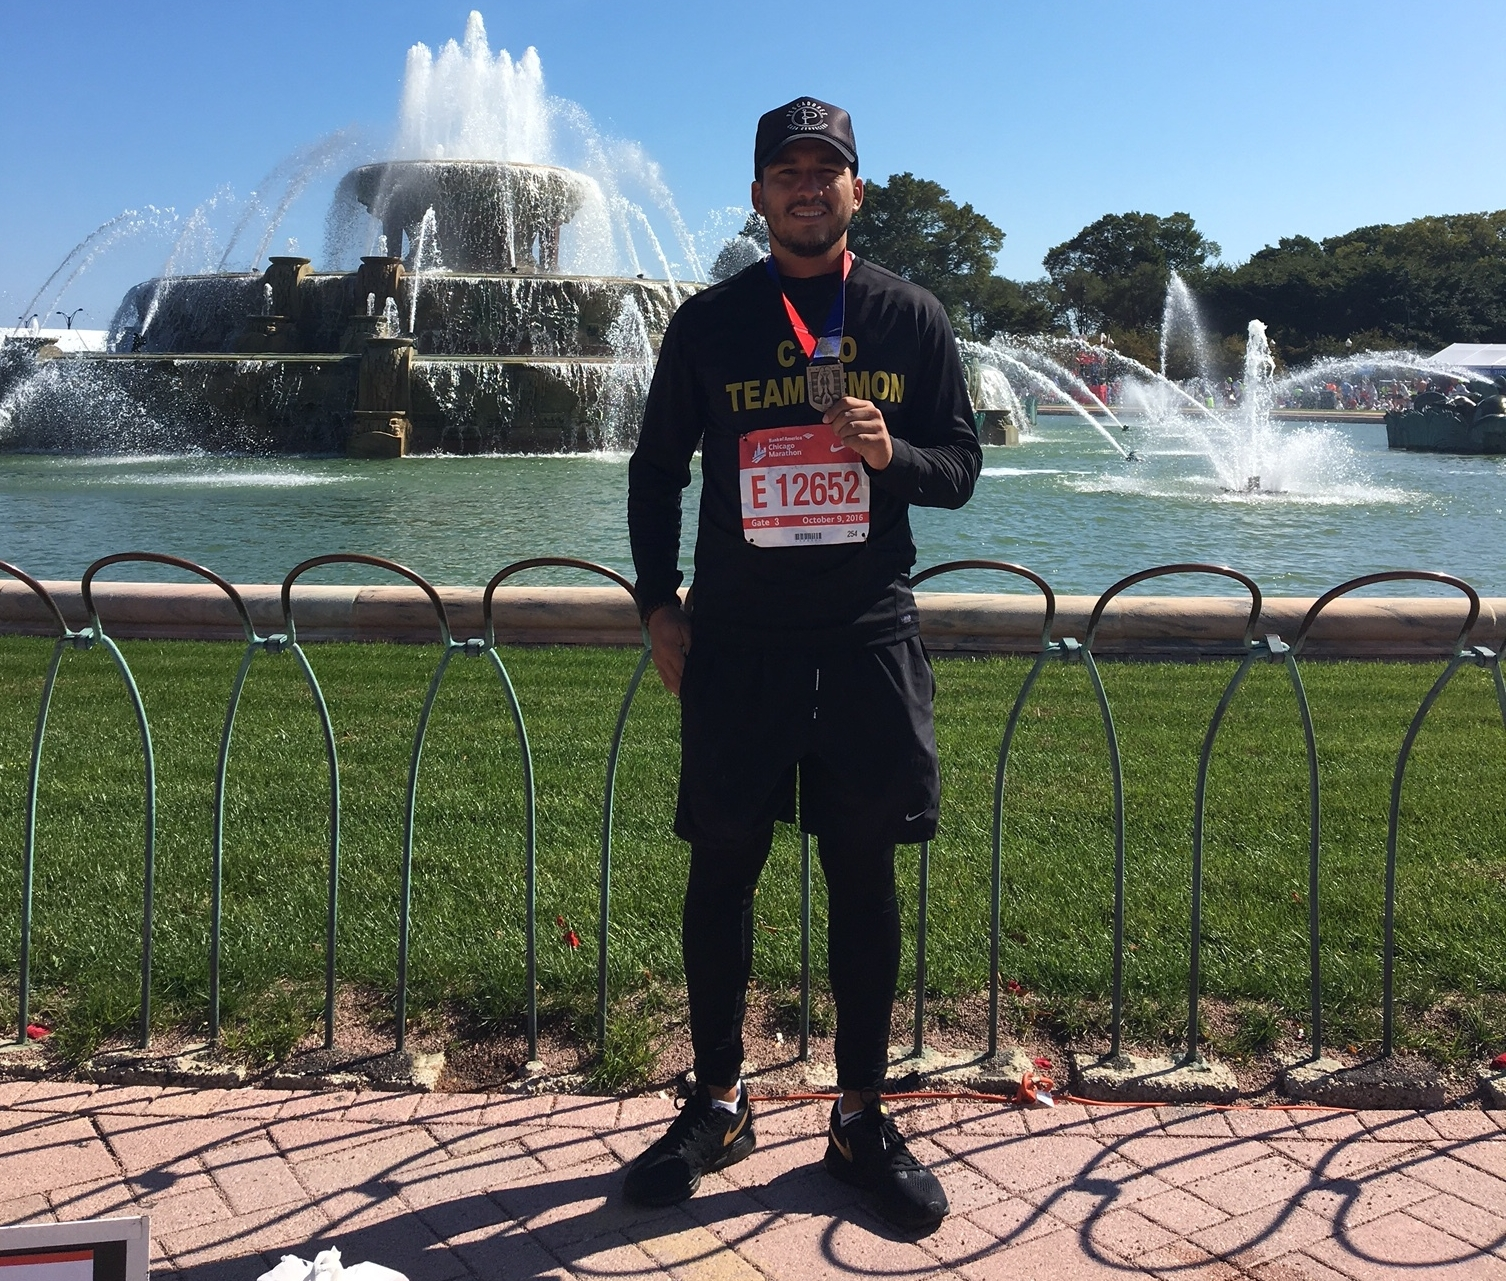 Christian is running to raise funds to fight childhood cancer. Check out his campaign  here .